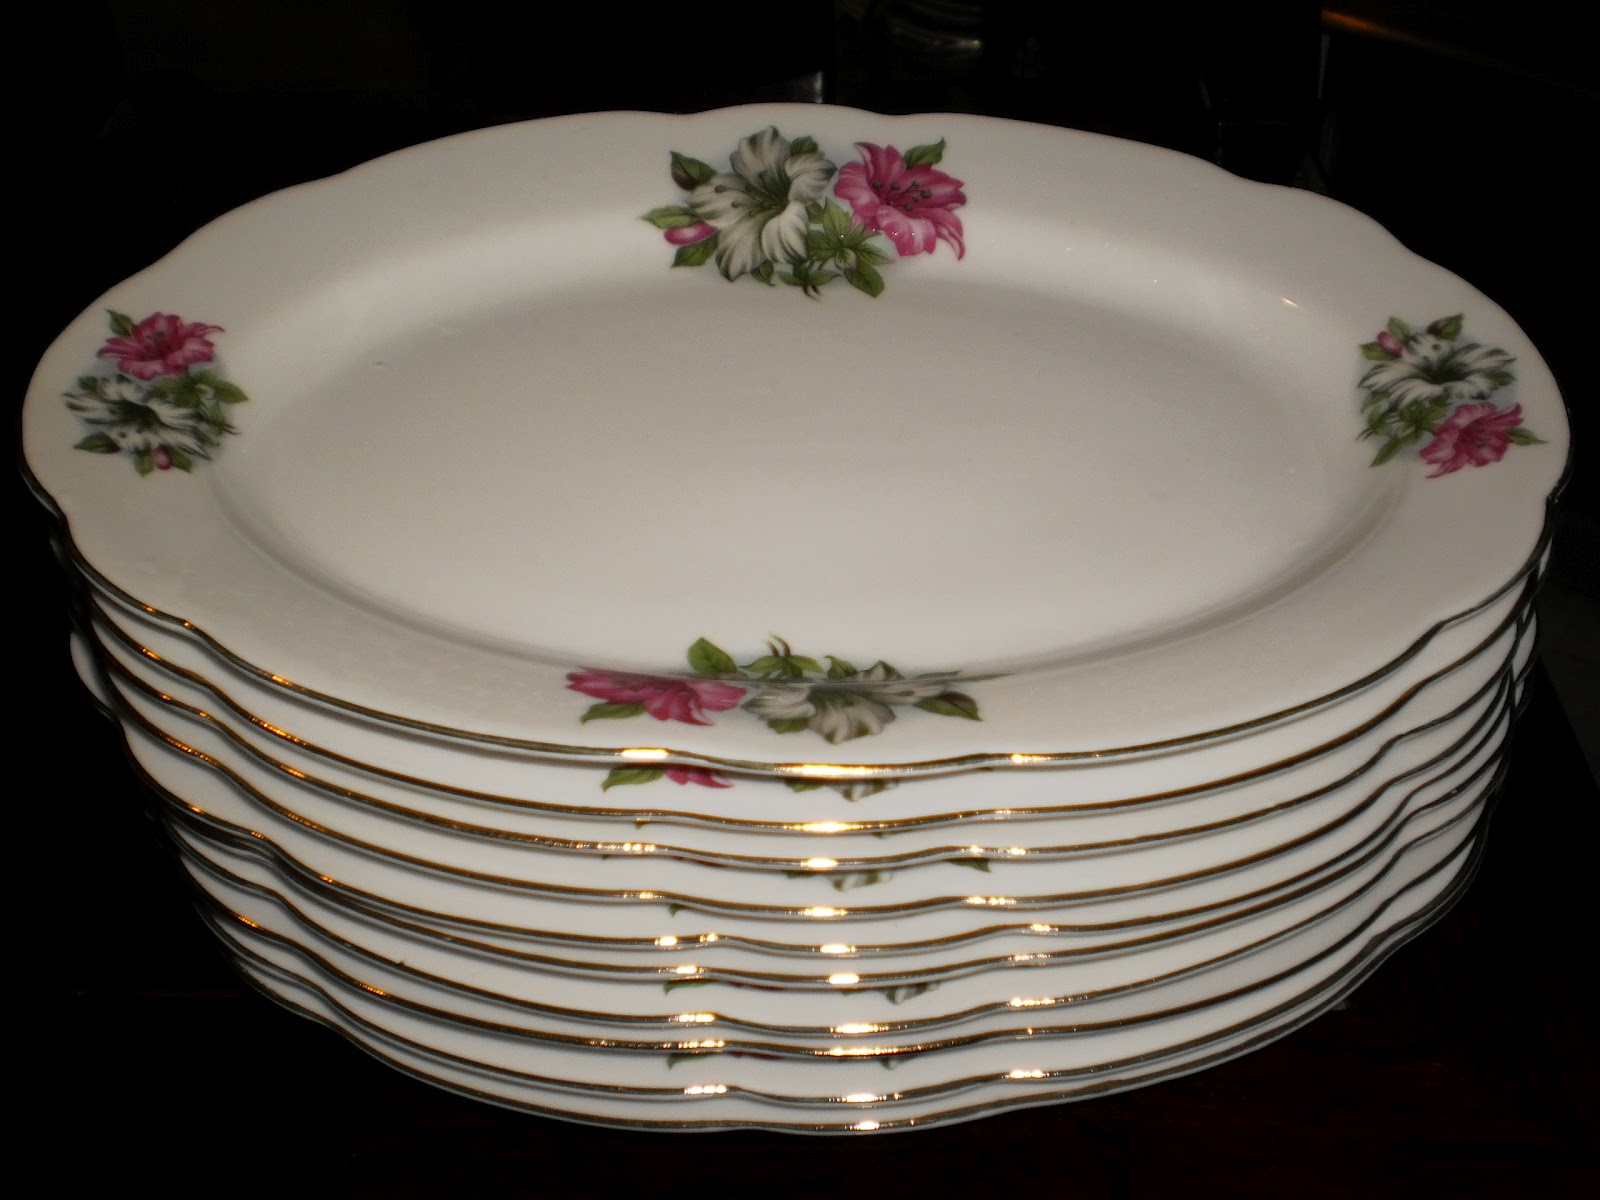 Plates For Sale >> Bonnie S Collection Bunga Kangkung Oval Plates For Sale